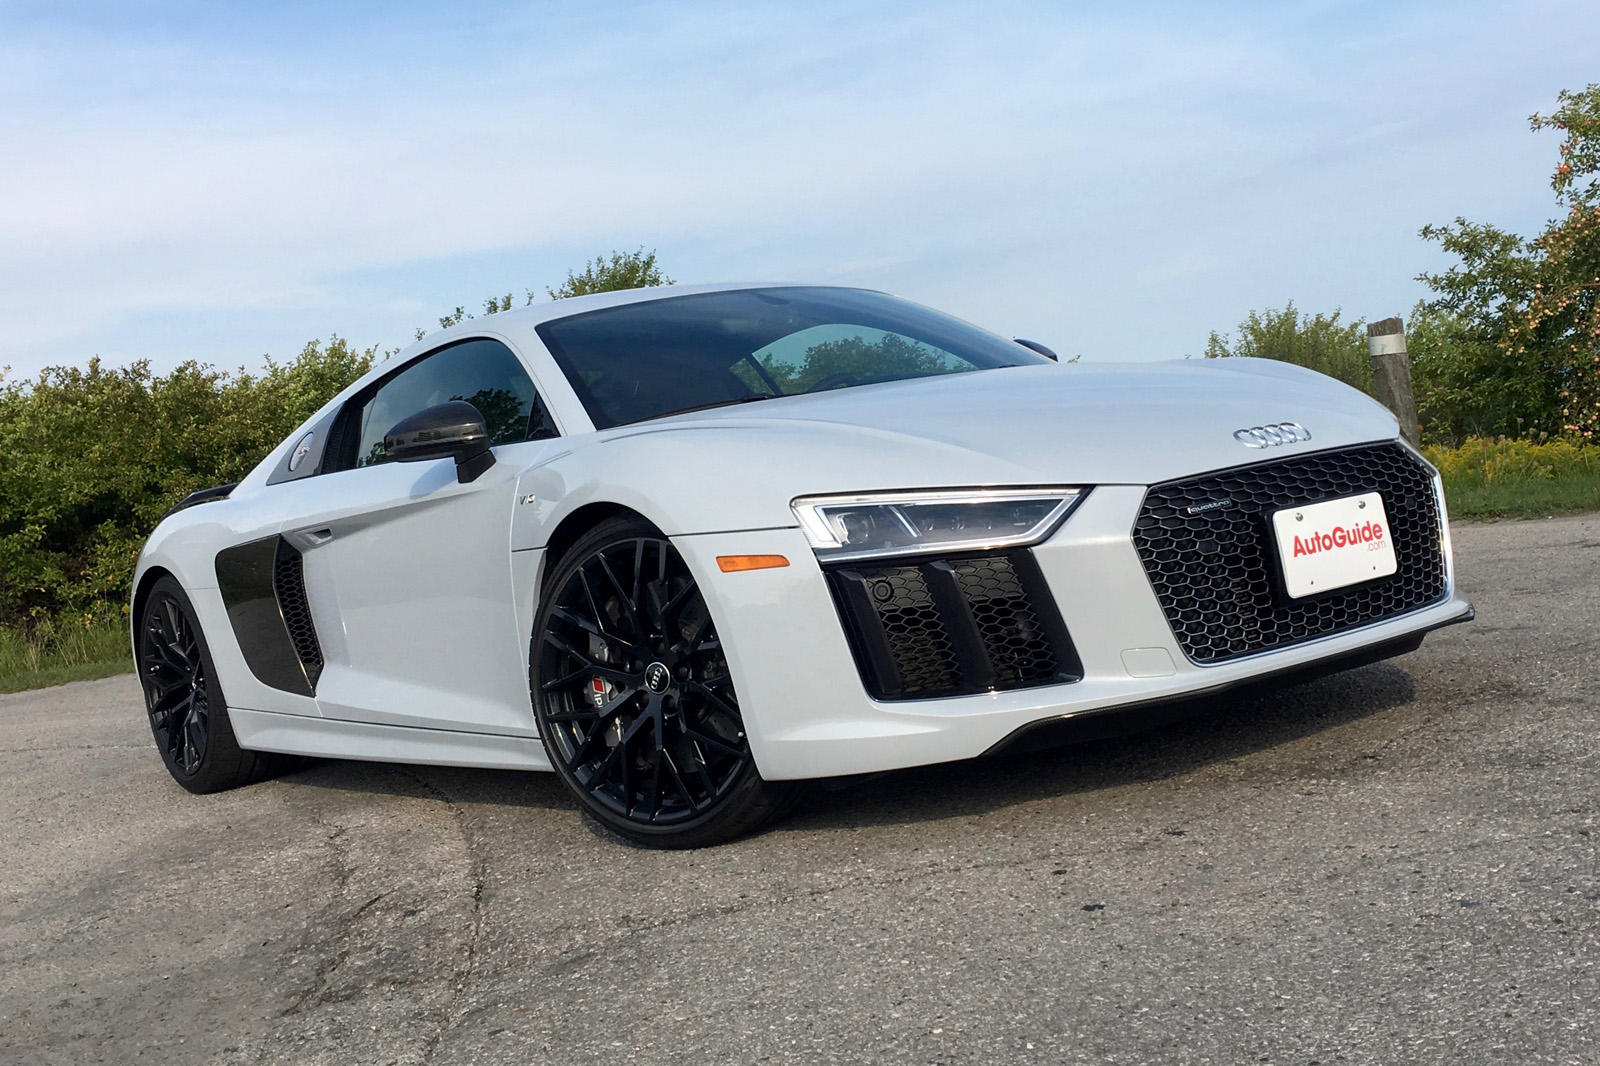 2017 audi r8 v10 plus review - autoguide